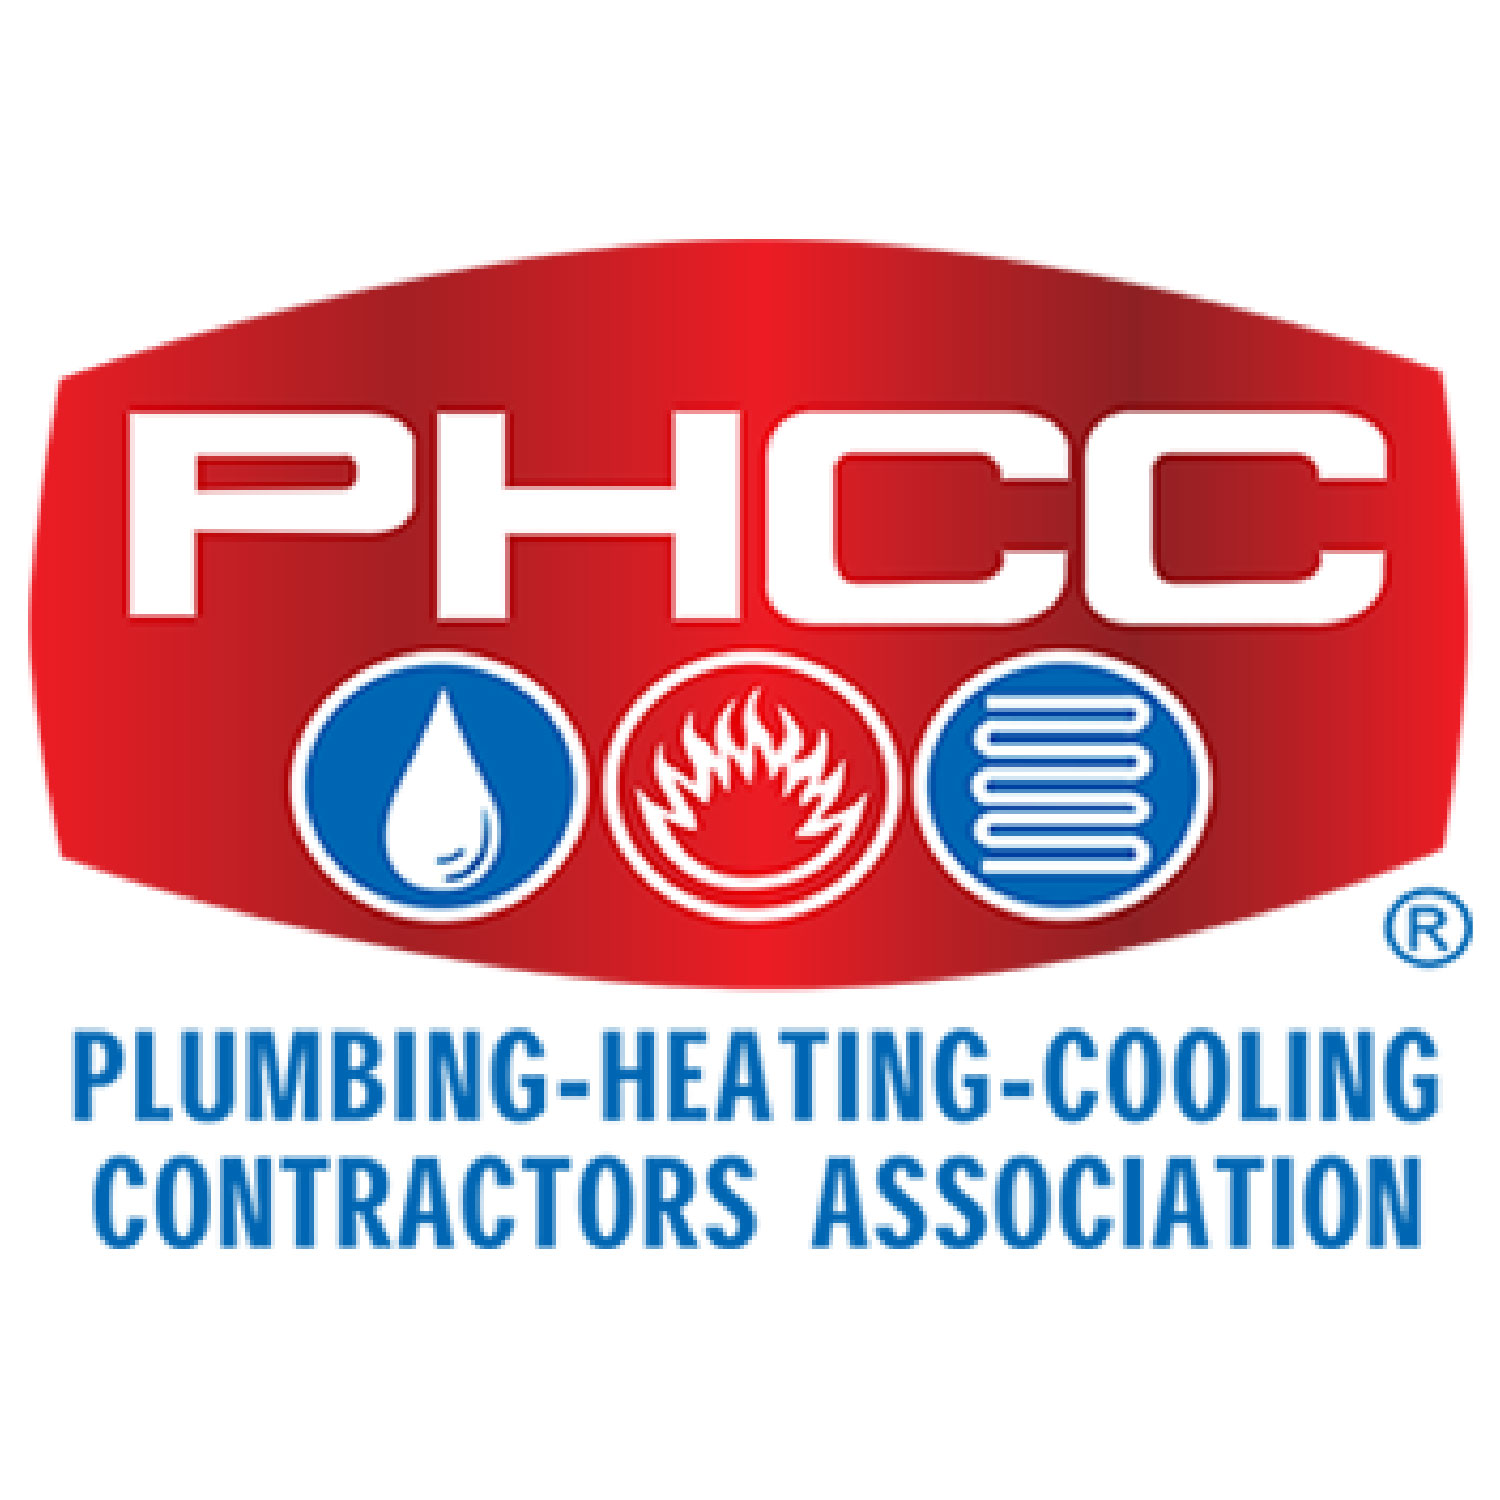 PHCC: Plumbing Heating Cooling Contractors Association